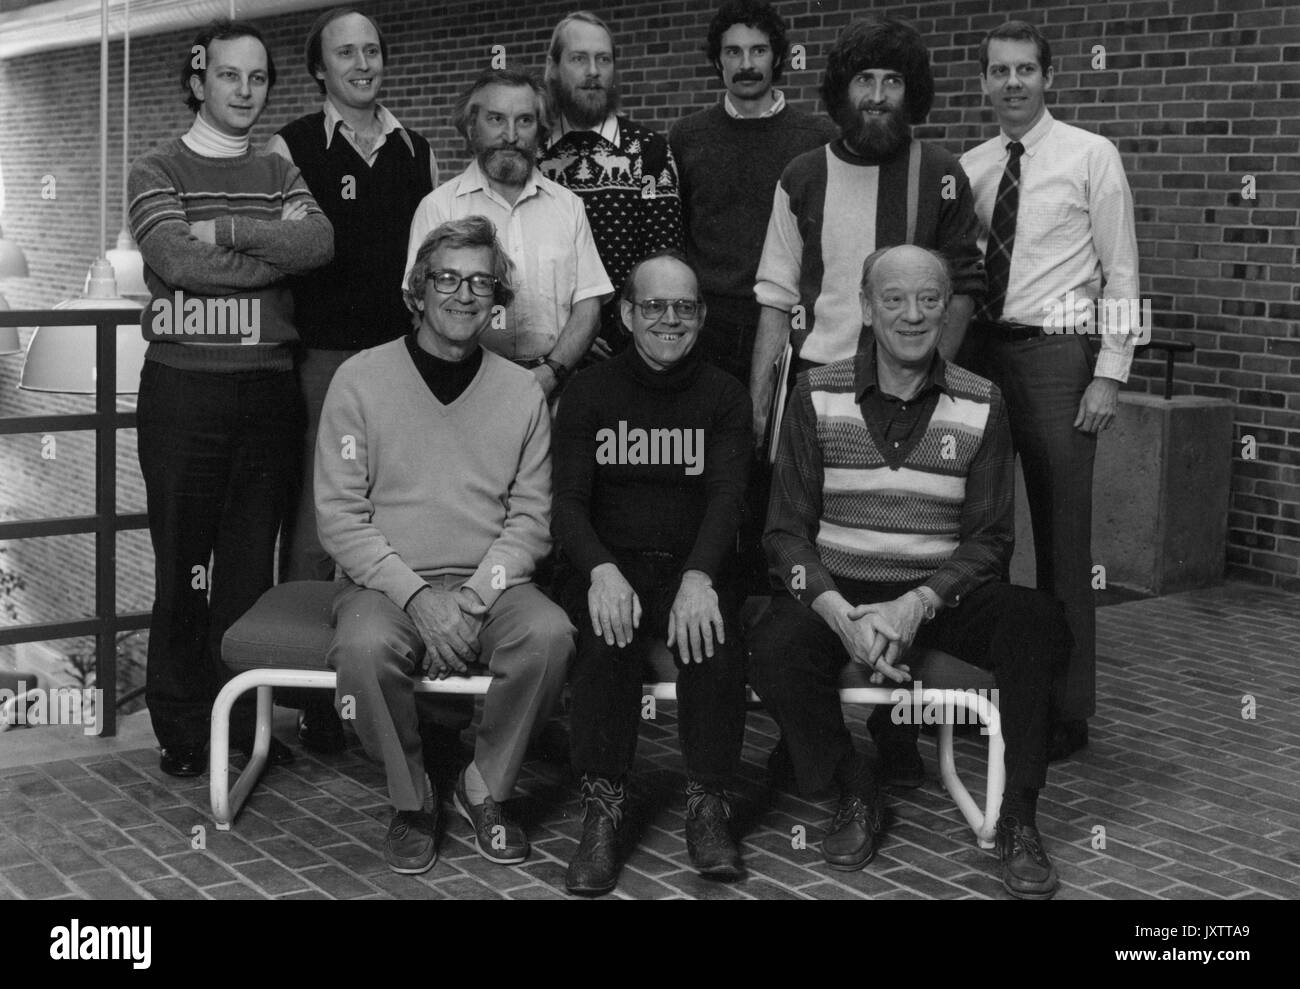 Earth and Planetary Sciences, Robert Long, Hans Eugster, Owen Phillips, Dimitri Sverjenski, Peter Olsen, Lawrence A Hardie, David Redli Veblen, John Mott Ferry, Declan De Paor, Steven Mitchell Stanley, Group photograph, Some of the Faculty in Olin Hall, 1985. - Stock Image